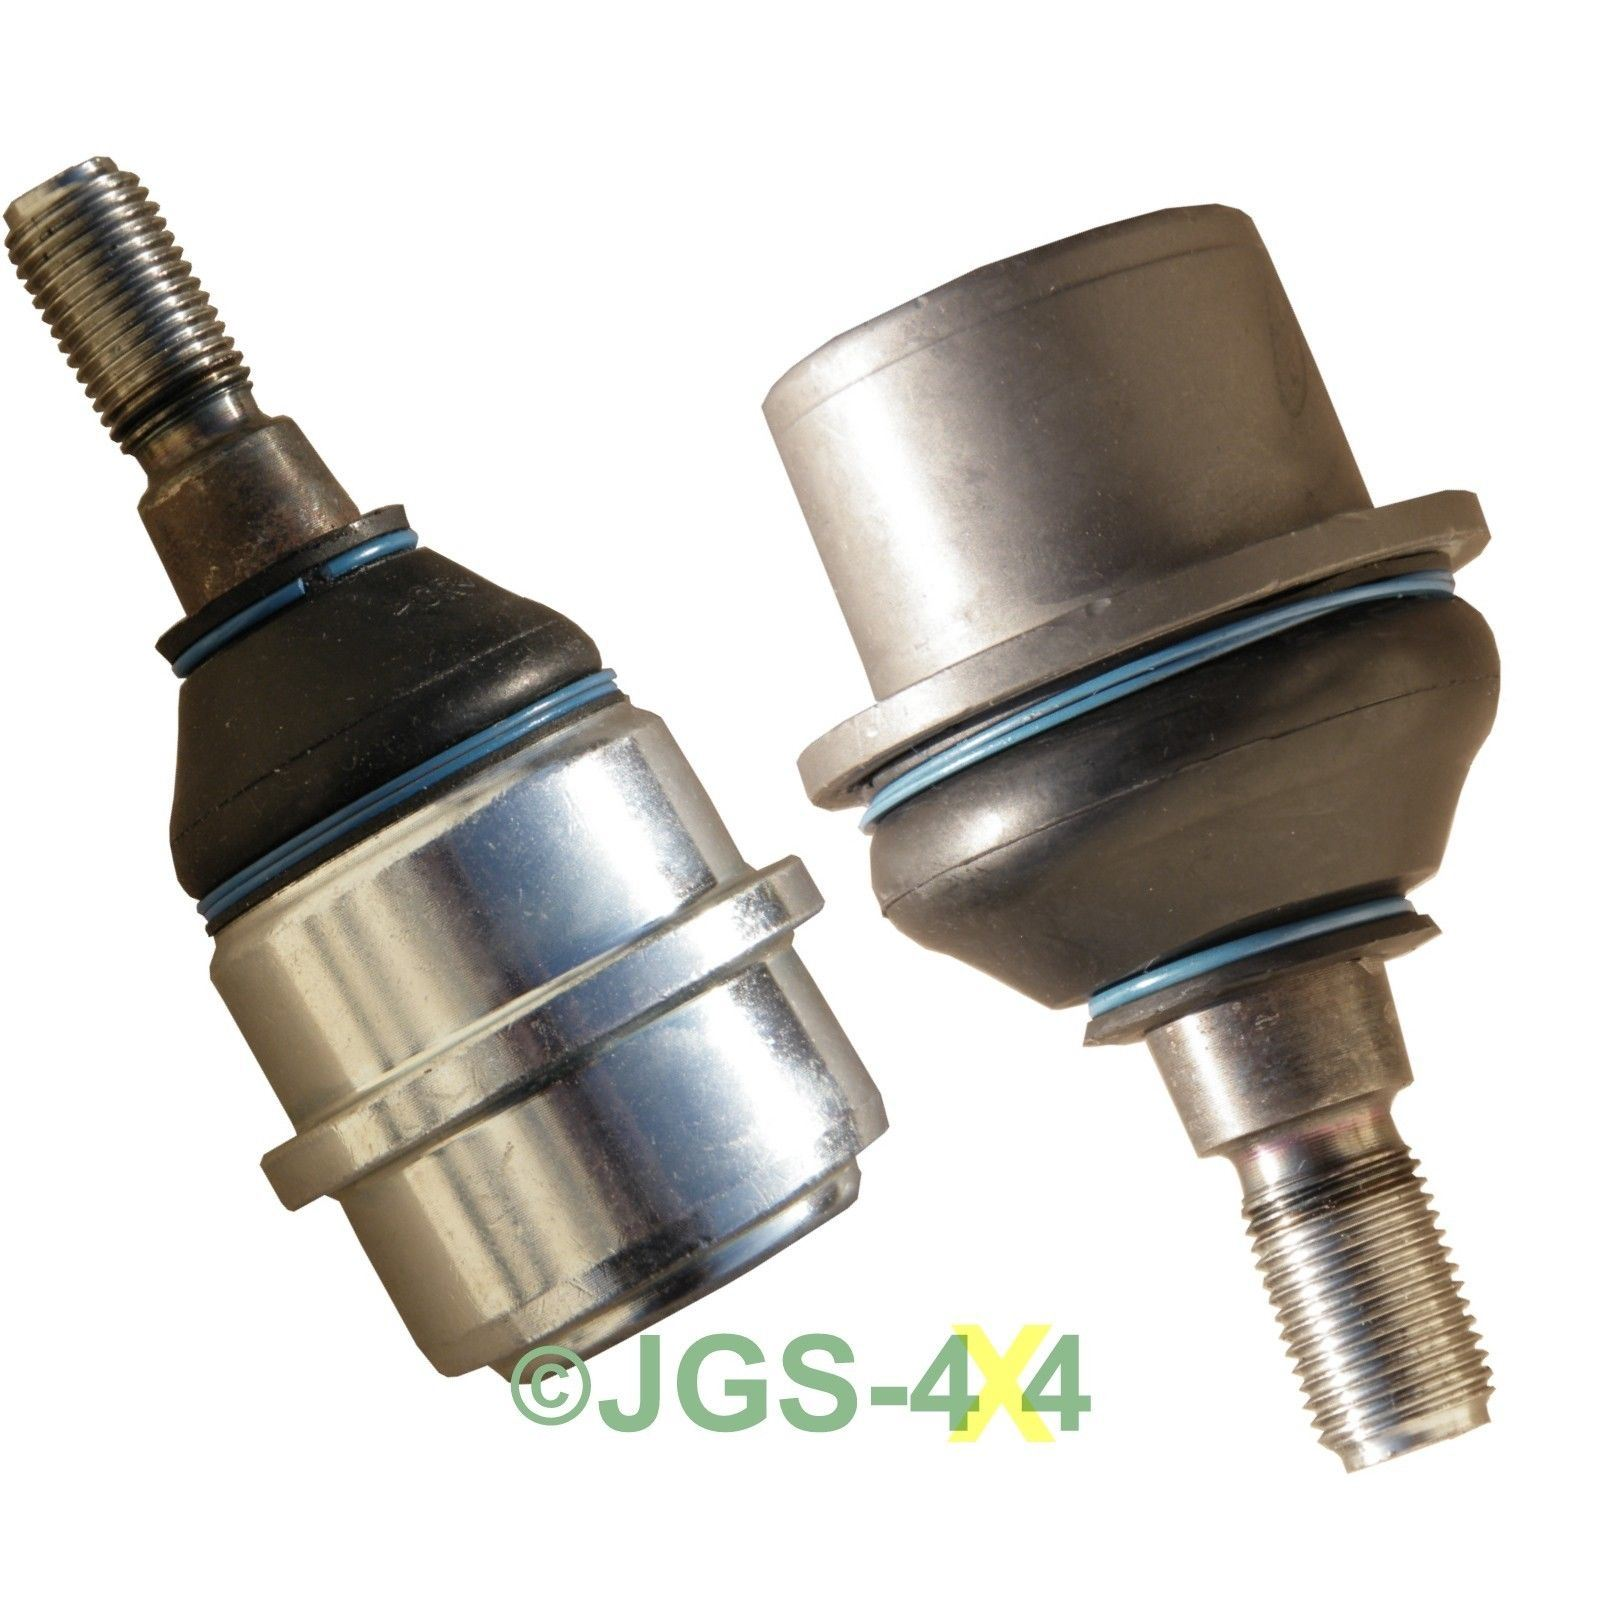 Steering Knuckle Repair Cost: Land Rover Discovery 2 Steering Knuckle Ball Joints Upper